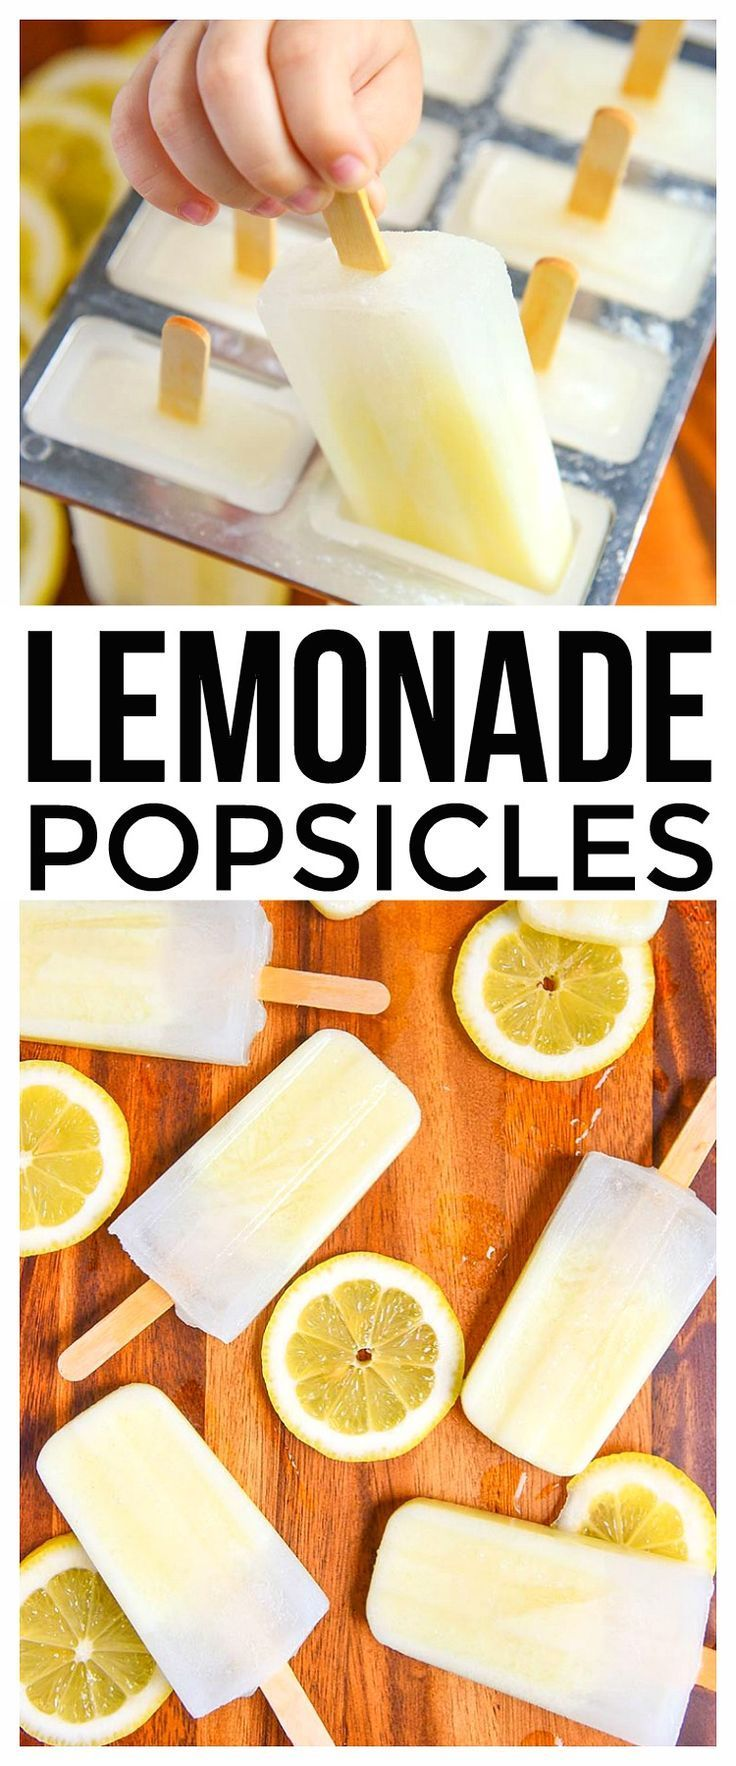 Fresh Lemonade Popsicles are a fun dessert recipe for kids and parents. Make this ice pops recipe with fresh ingredients for a tasty summer treat.     via @CourtneysSweets